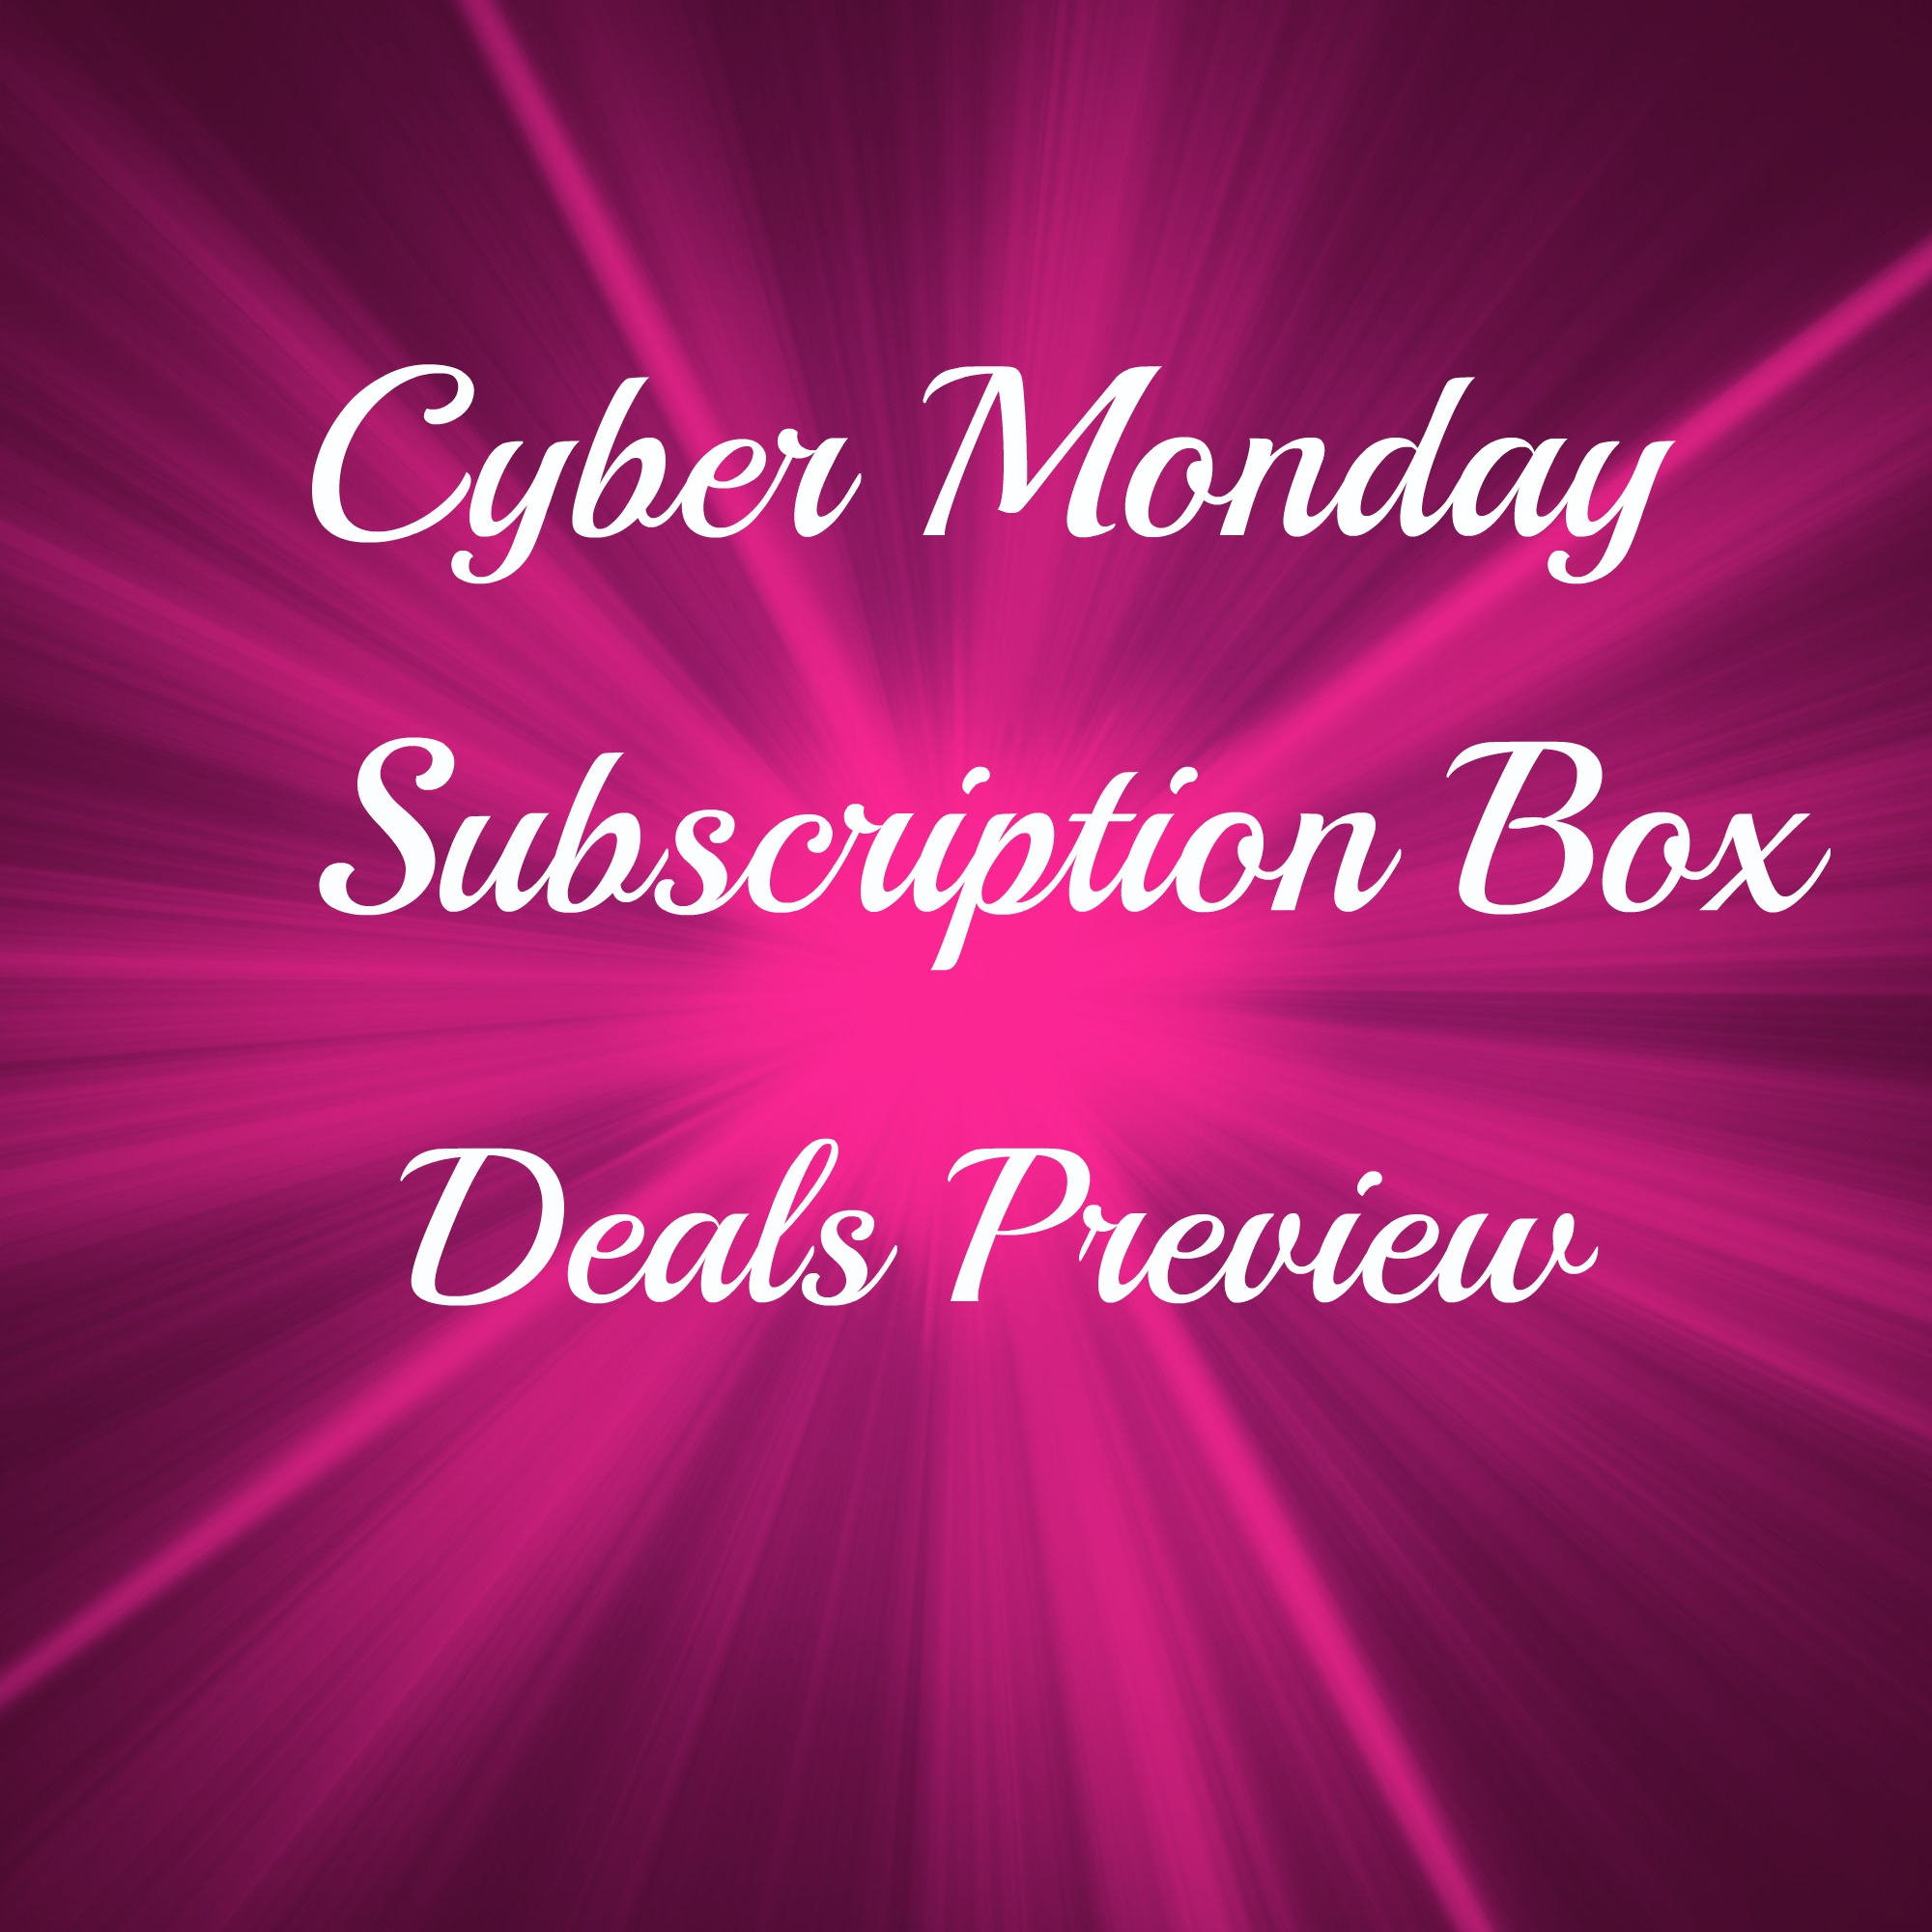 Cyber Monday Subscription Box Deals + Coupons 2014 Preview